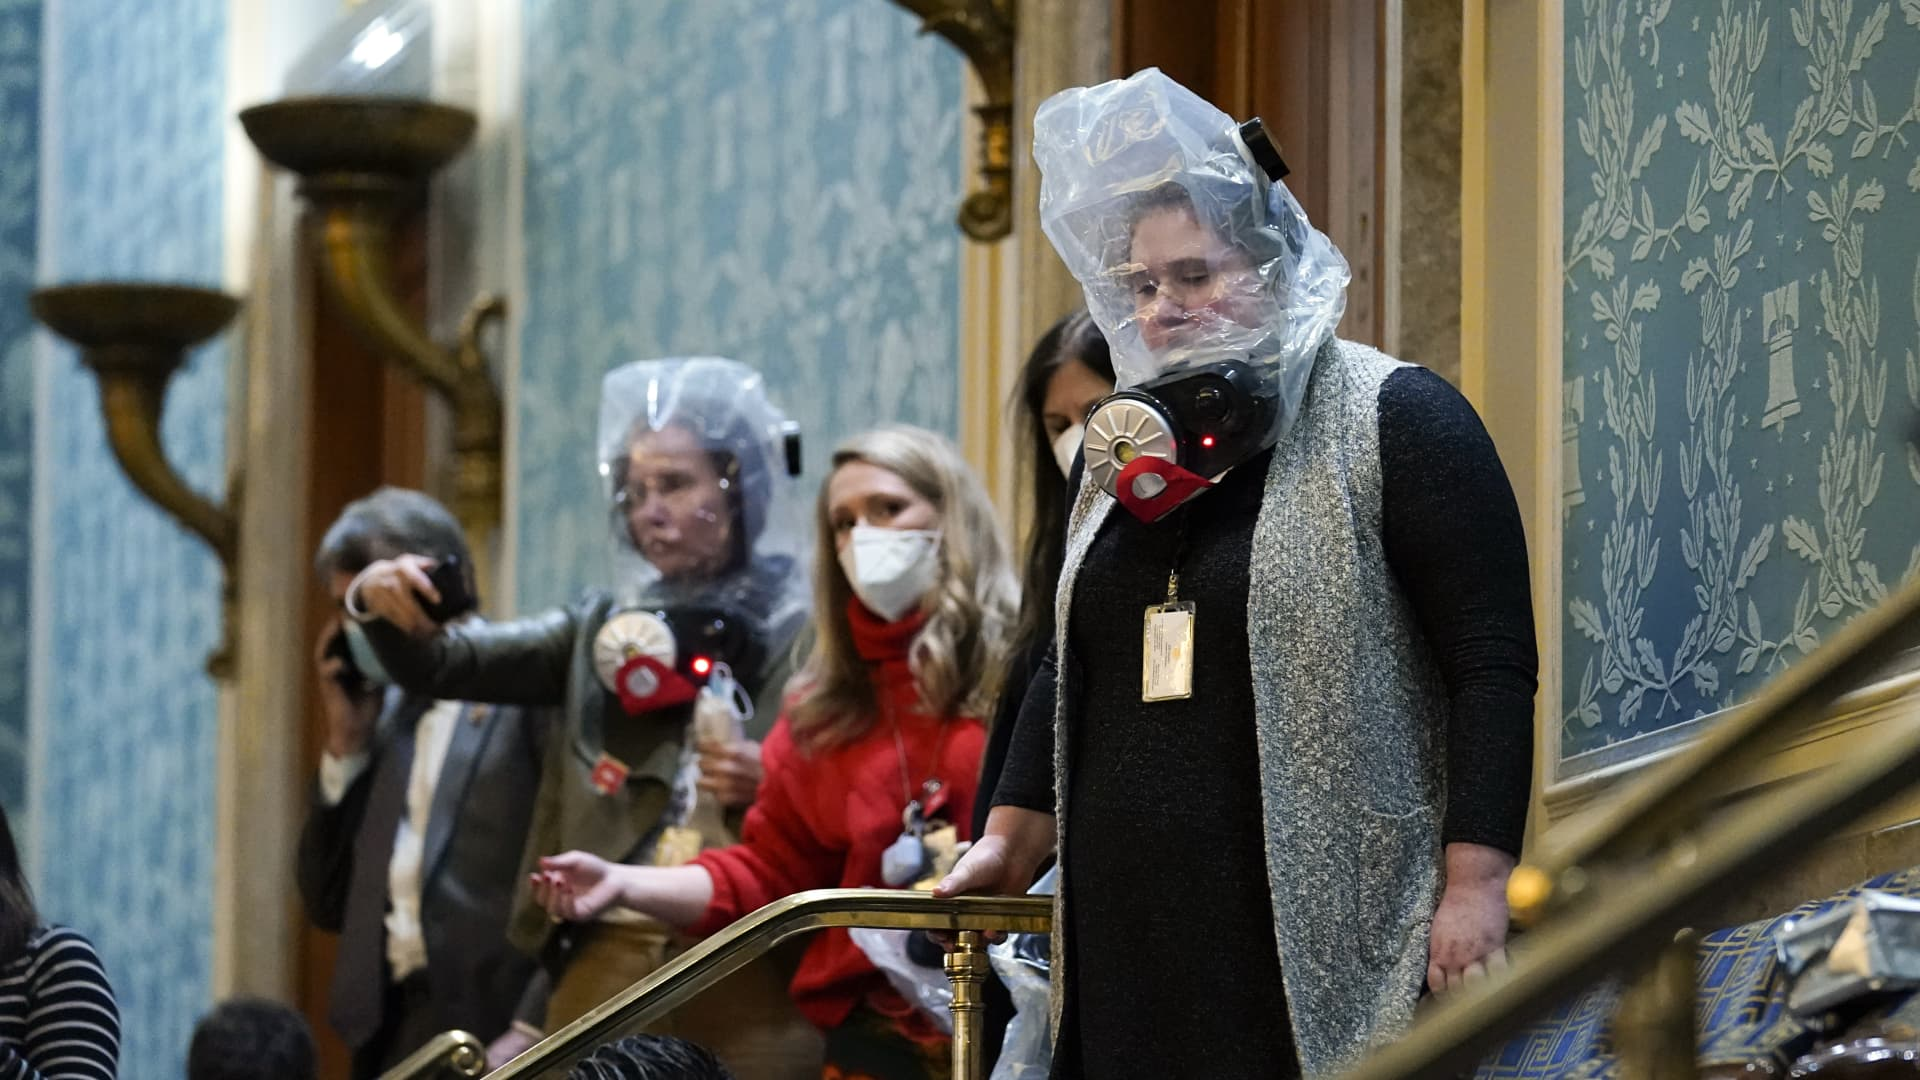 People are seen in the House gallery as protesters try to break into the House Chamber at the U.S. Capitol on Wednesday, Jan. 6, 2021, in Washington.